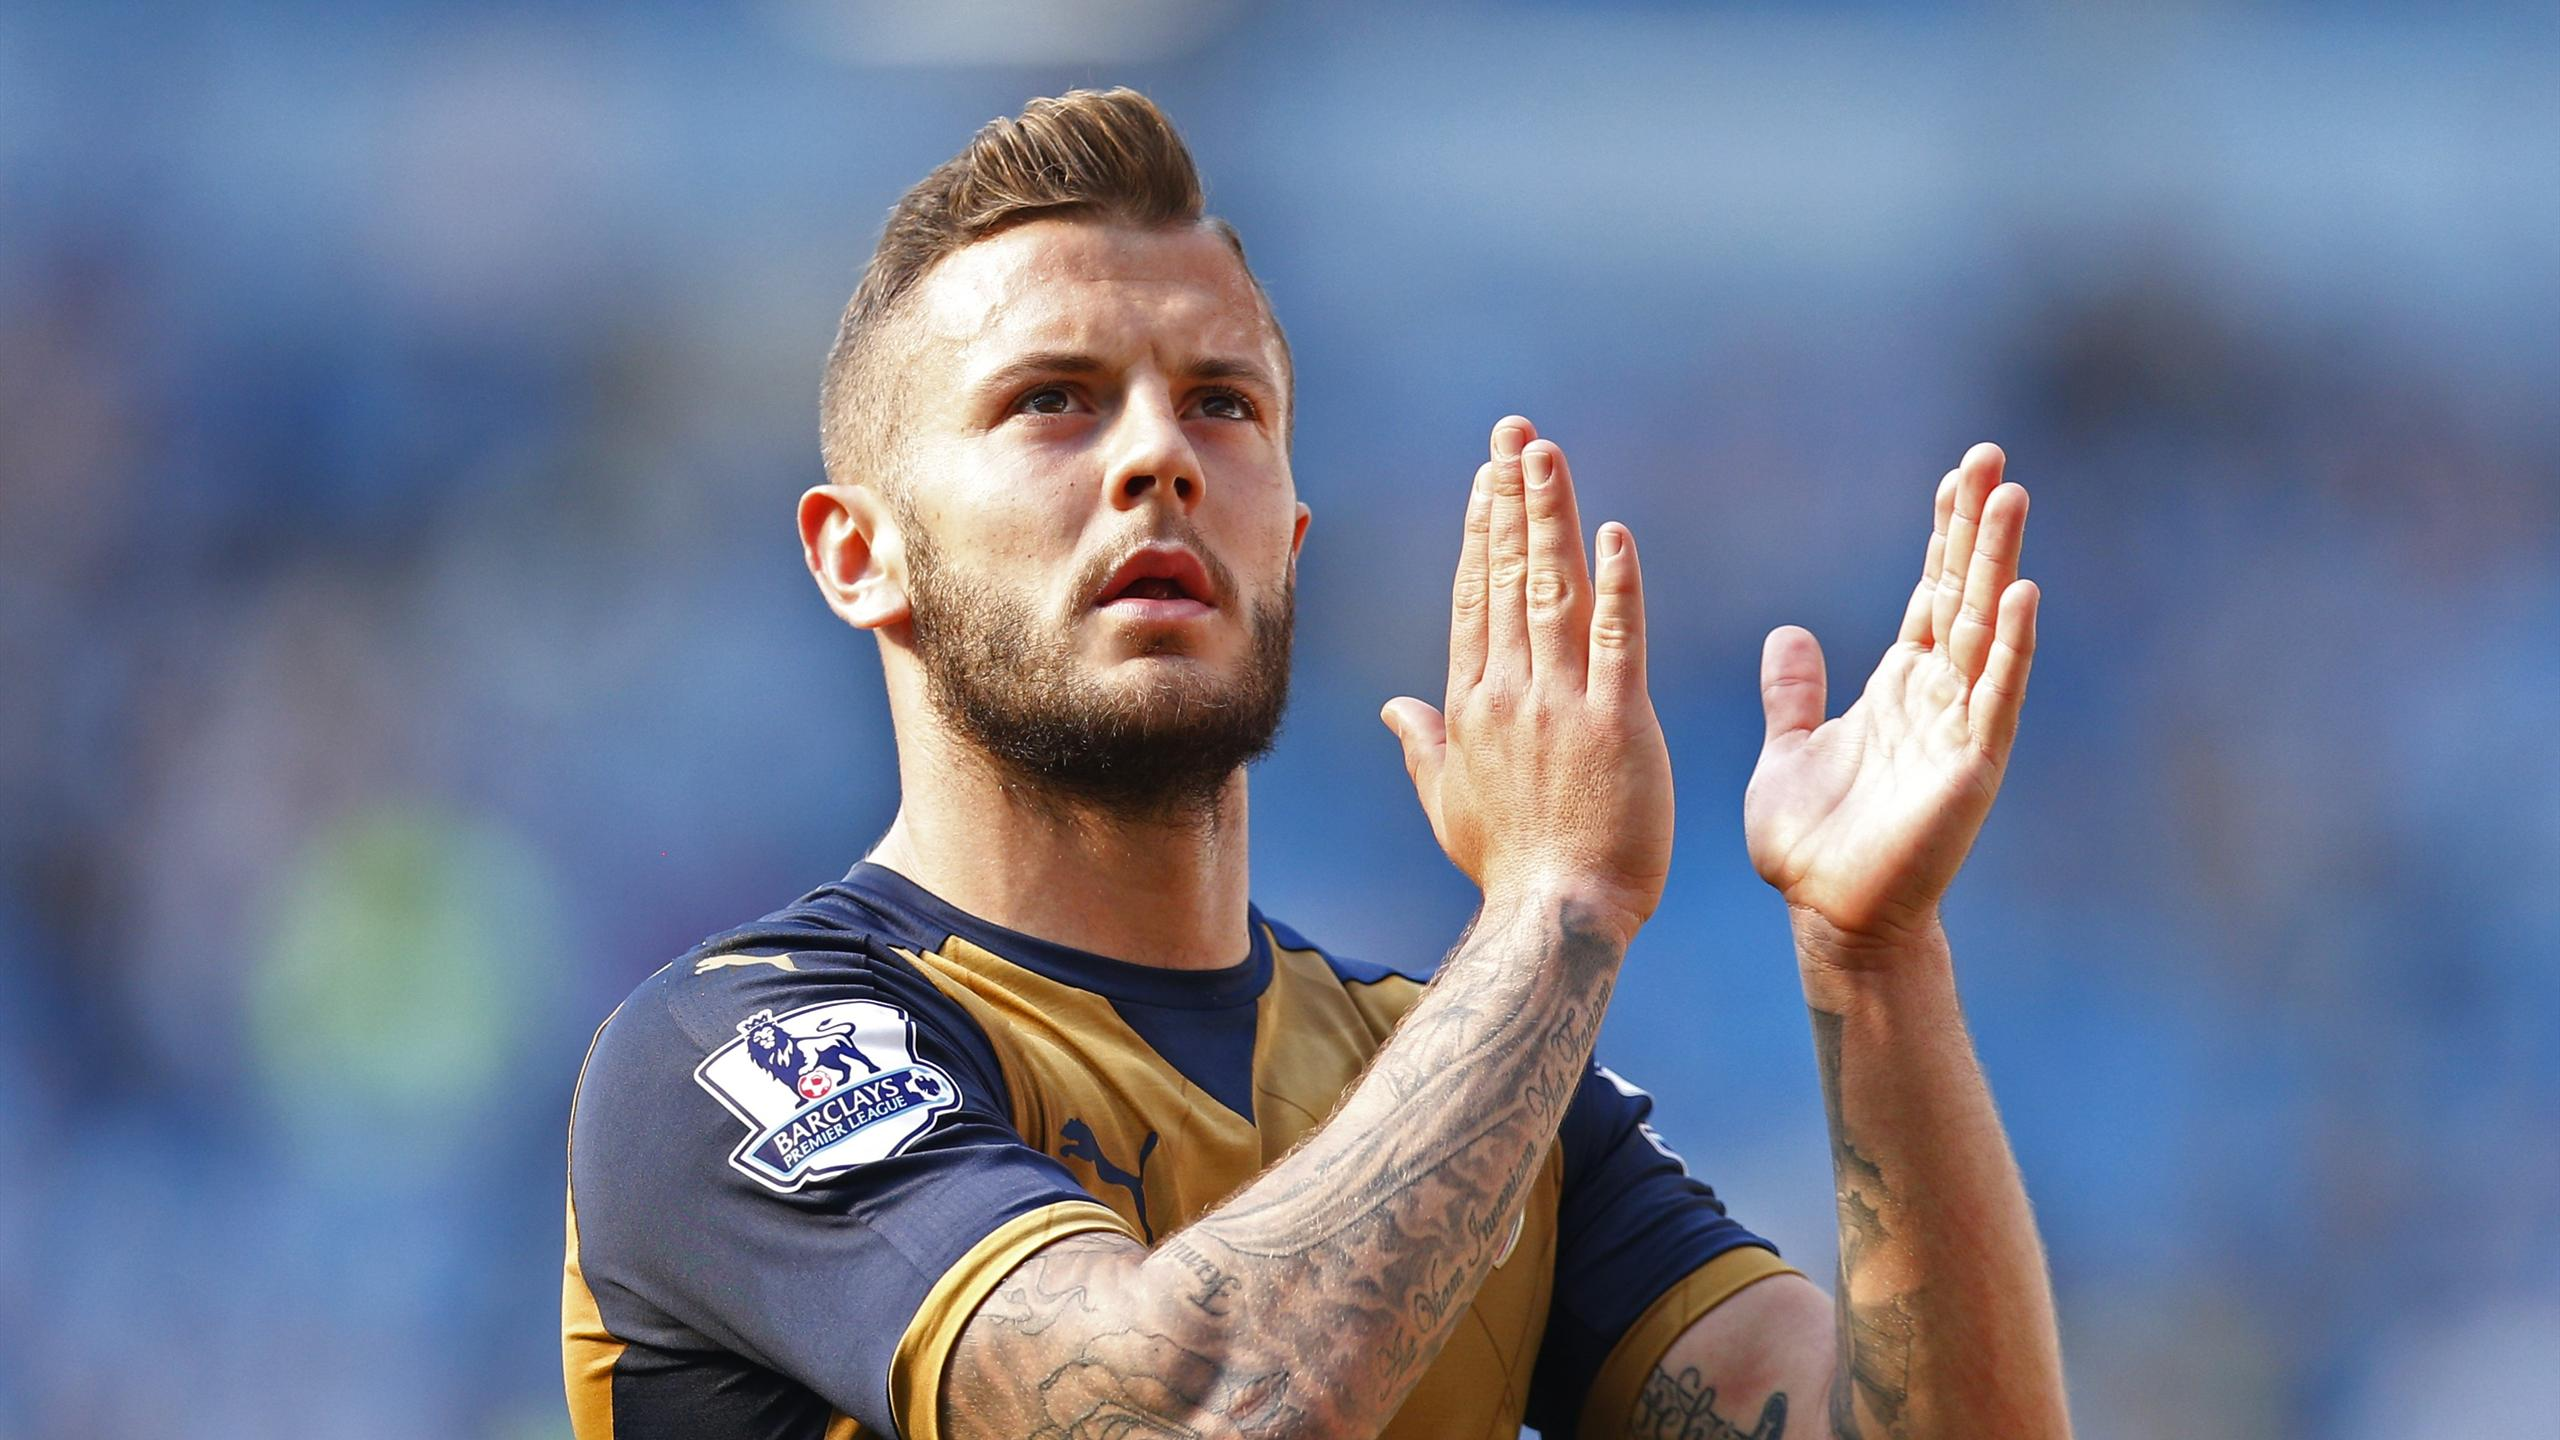 Arsenal's Jack Wilshere applauds fans